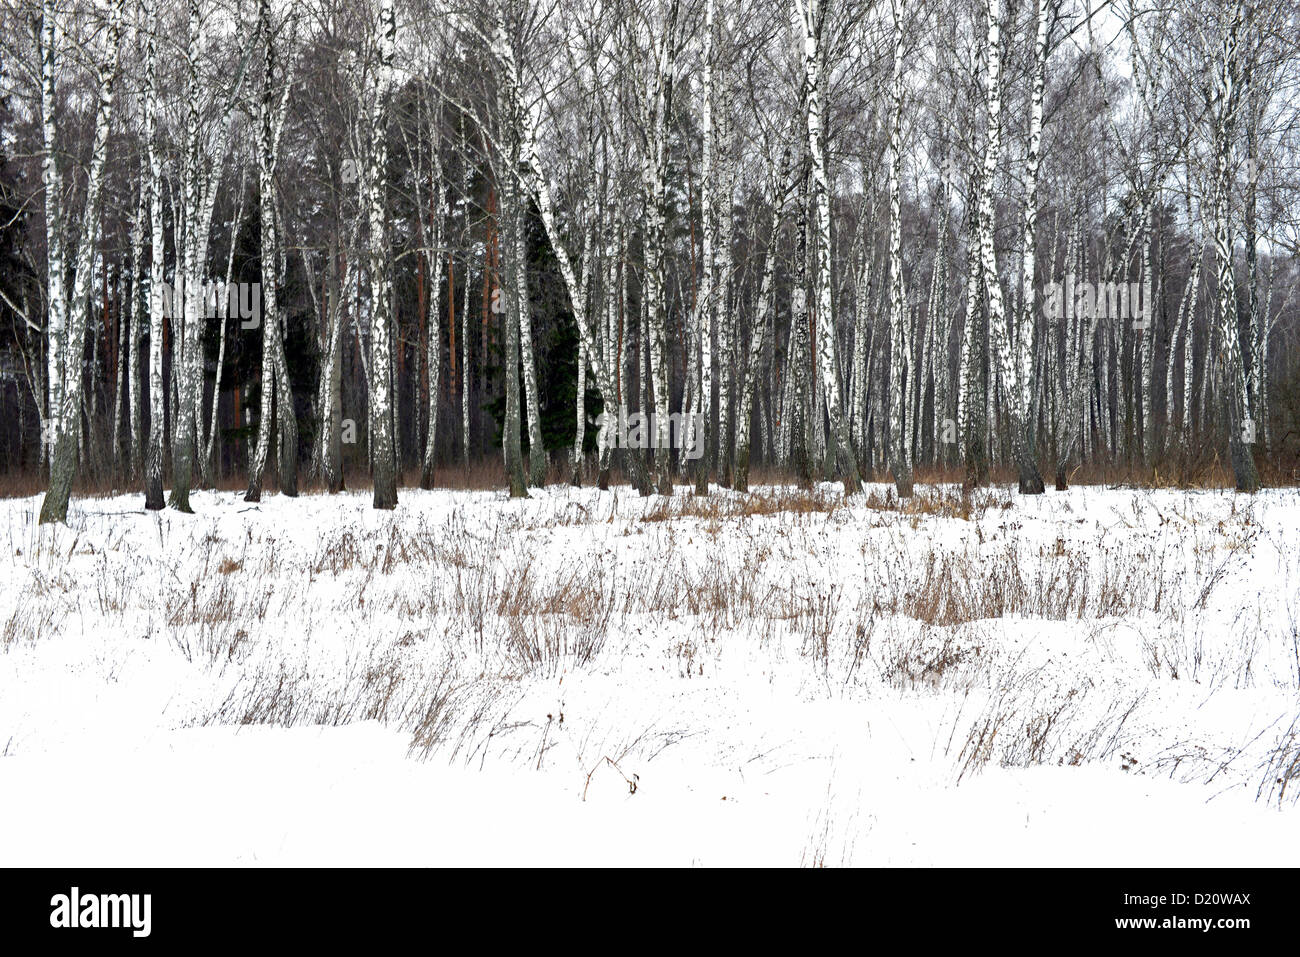 Birch wood in winter. Photo from Russia - Stock Image